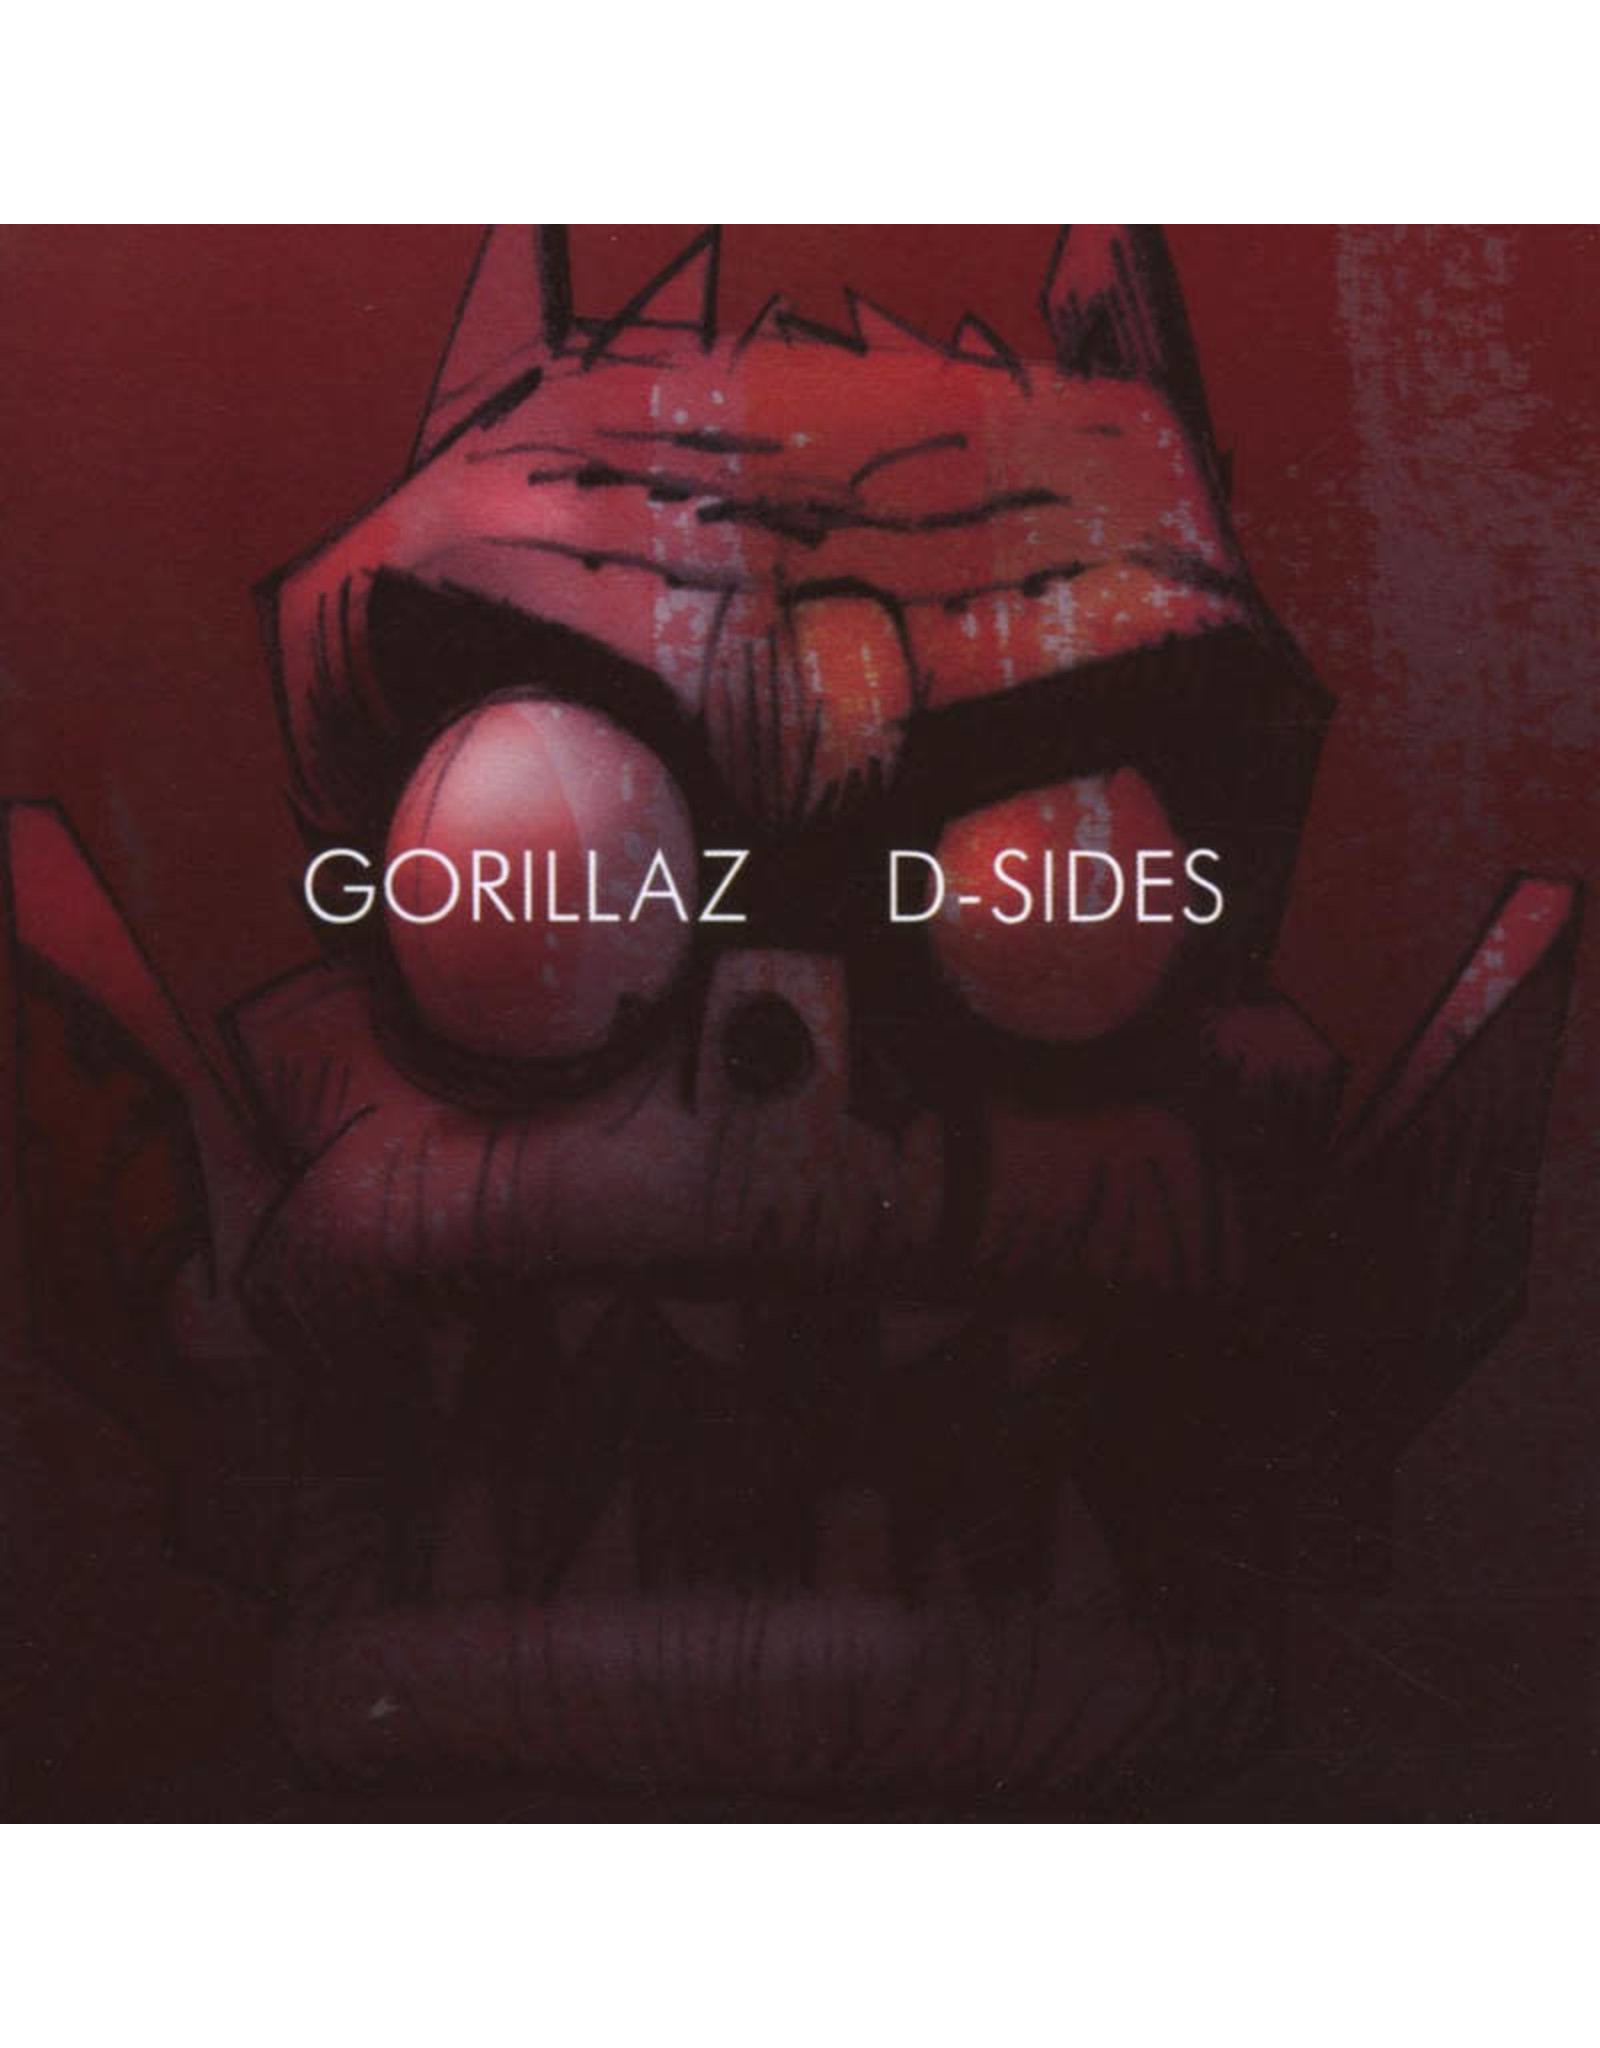 Gorillaz - D-Sides (Record Store Day) [3LP]